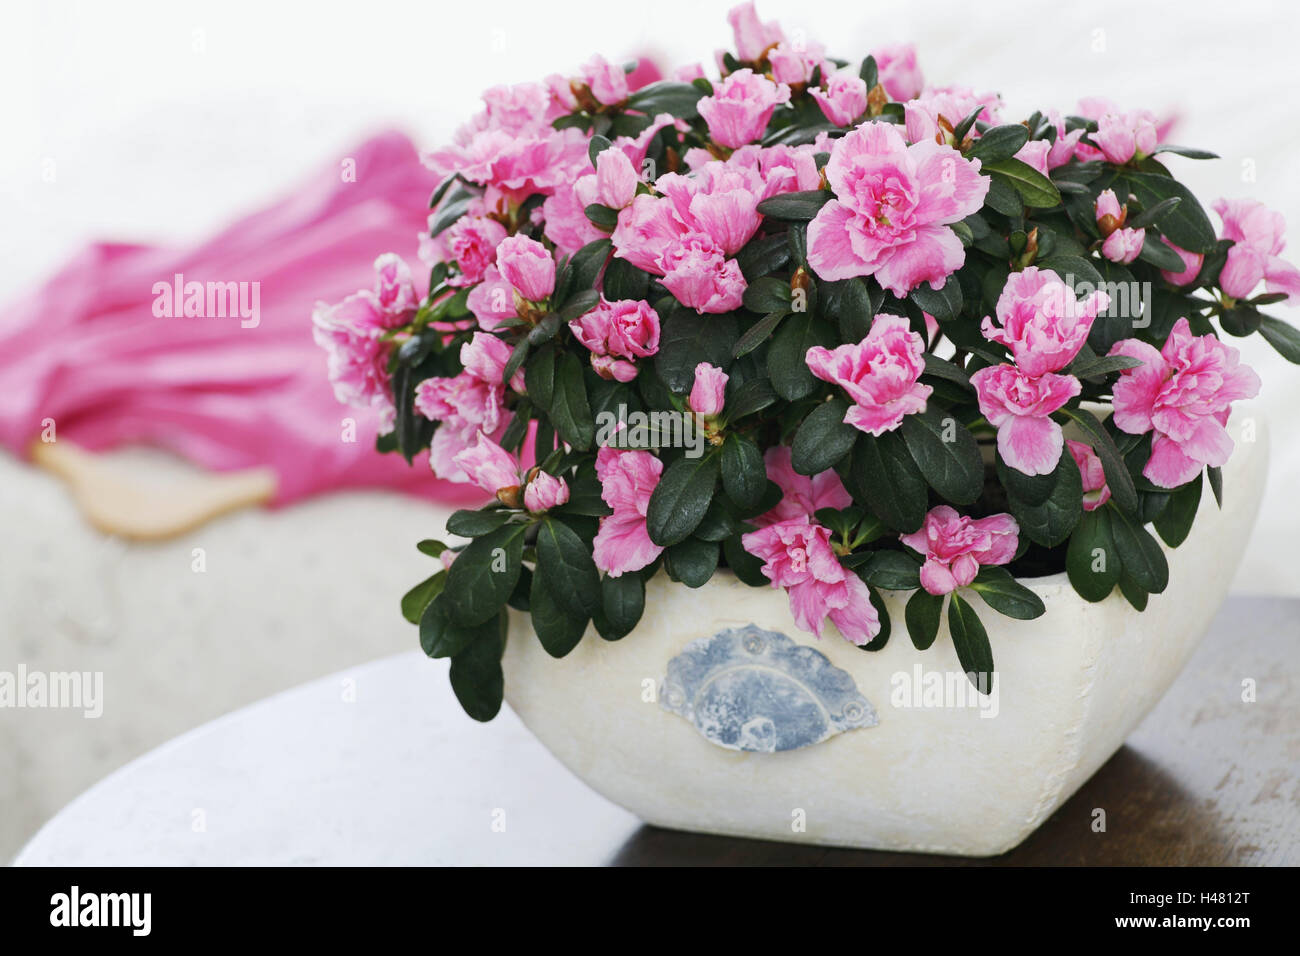 Azalea, blossom, indoor plant, table, rhododendron, pink, pink ...